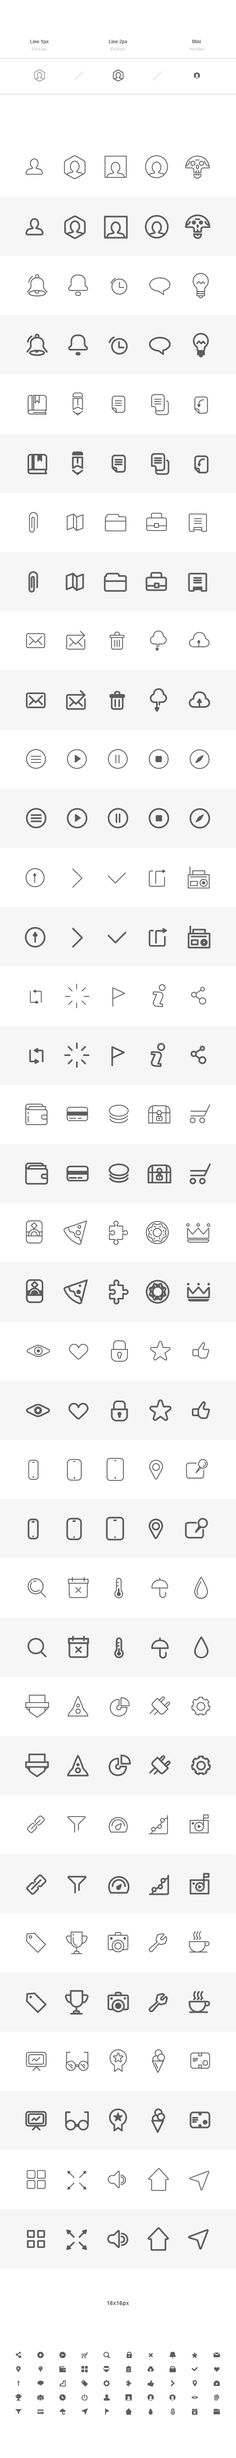 230 Wireframe Icons | GraphicBurger